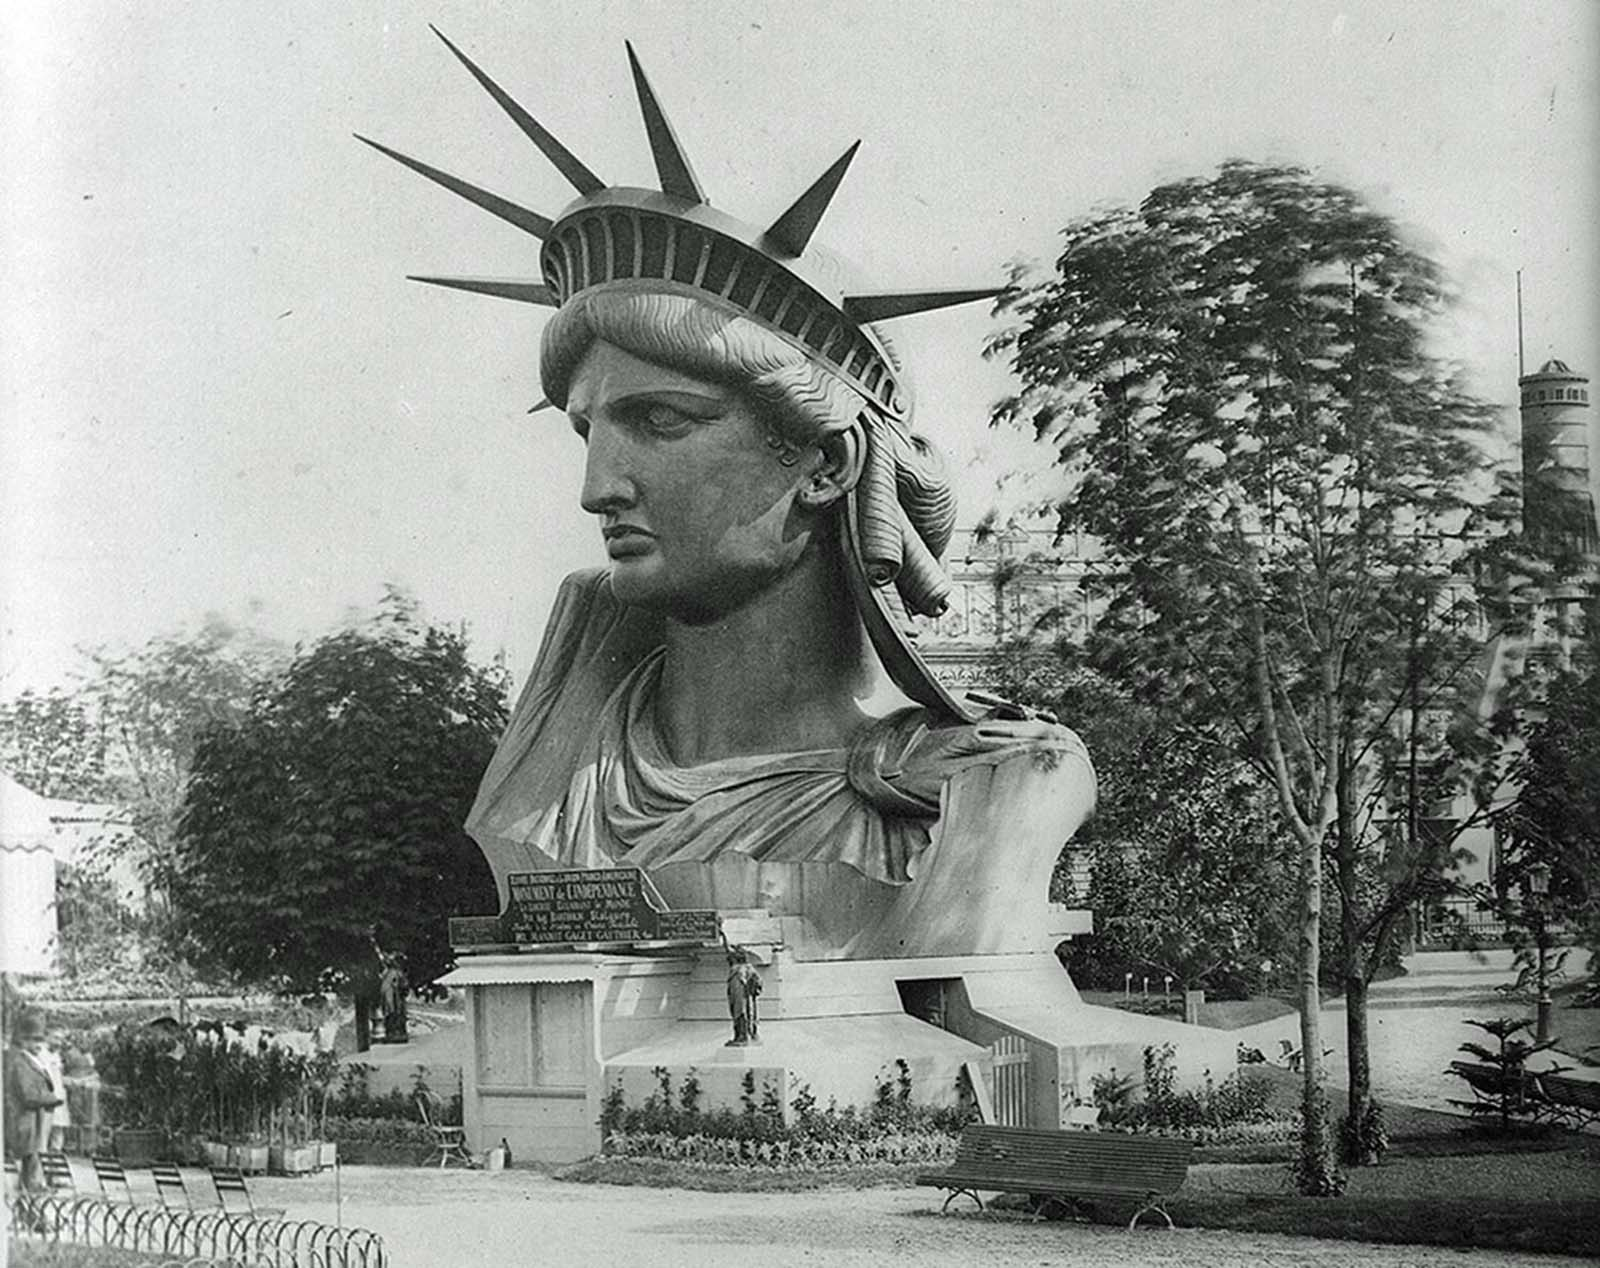 The head of the Statue of Liberty, on display in a park in Paris, France, in 1883.